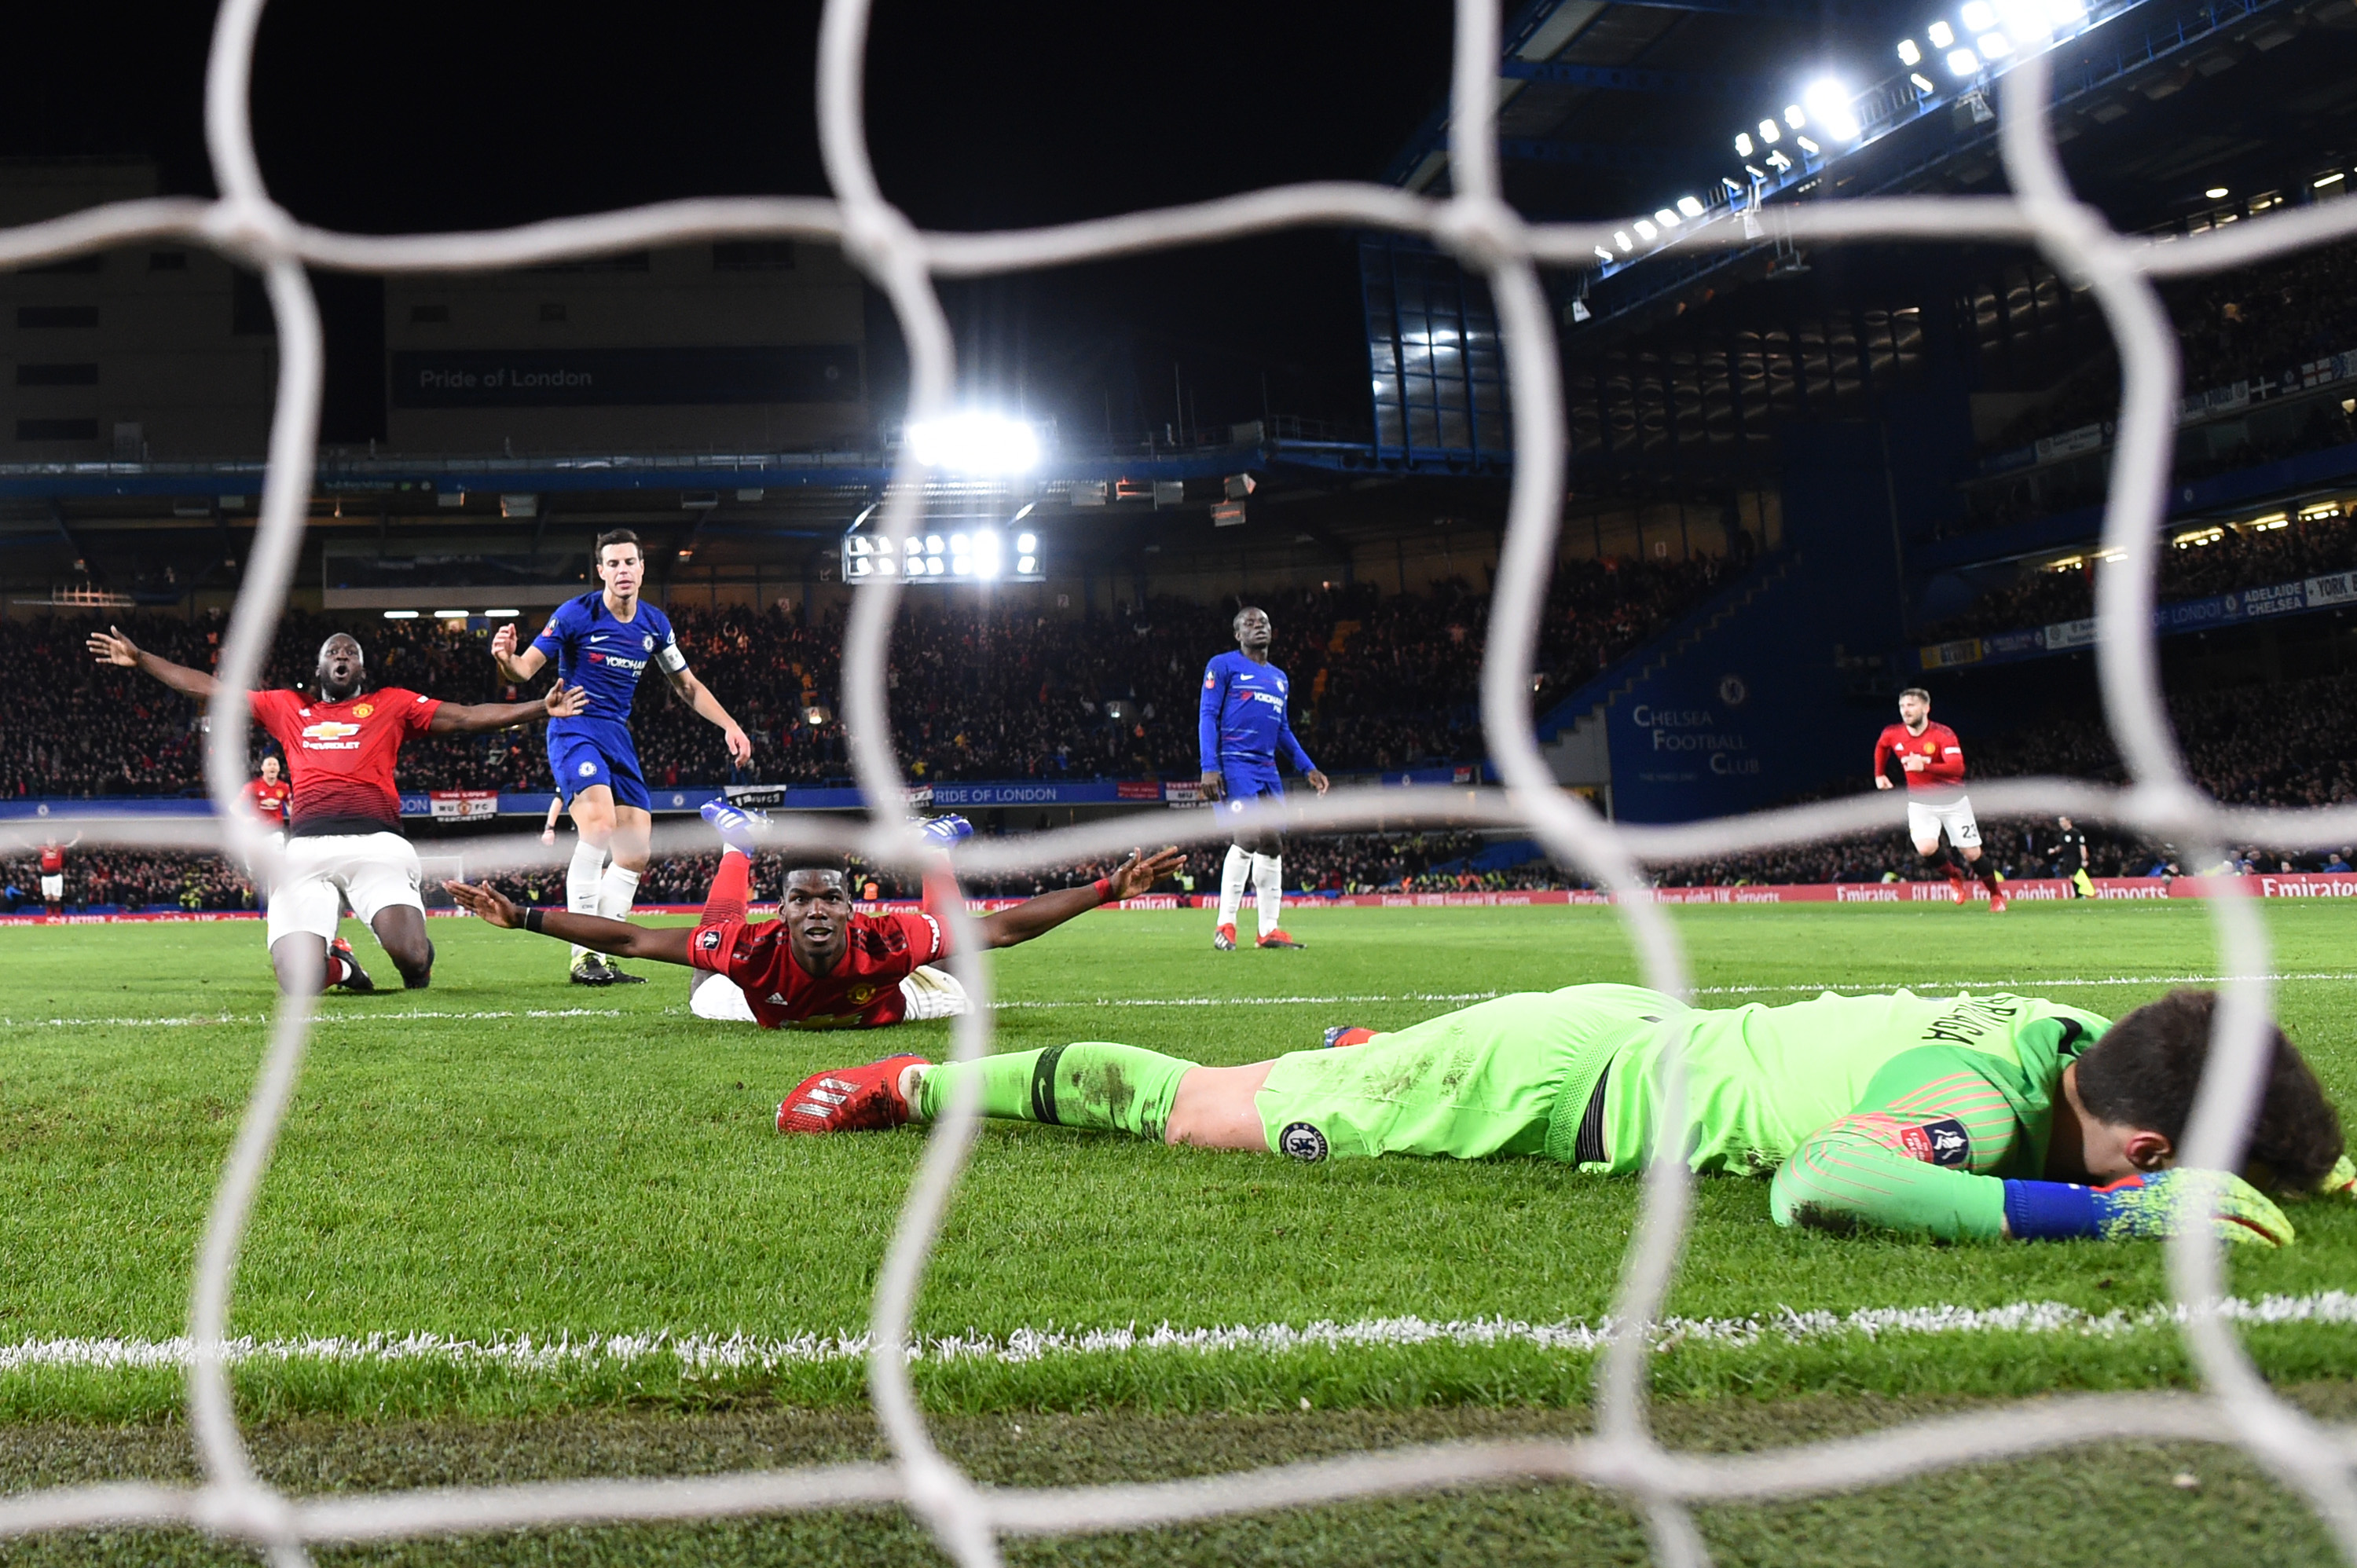 Chelsea 0-2 Manchester United, FA Cup: Post-match reaction